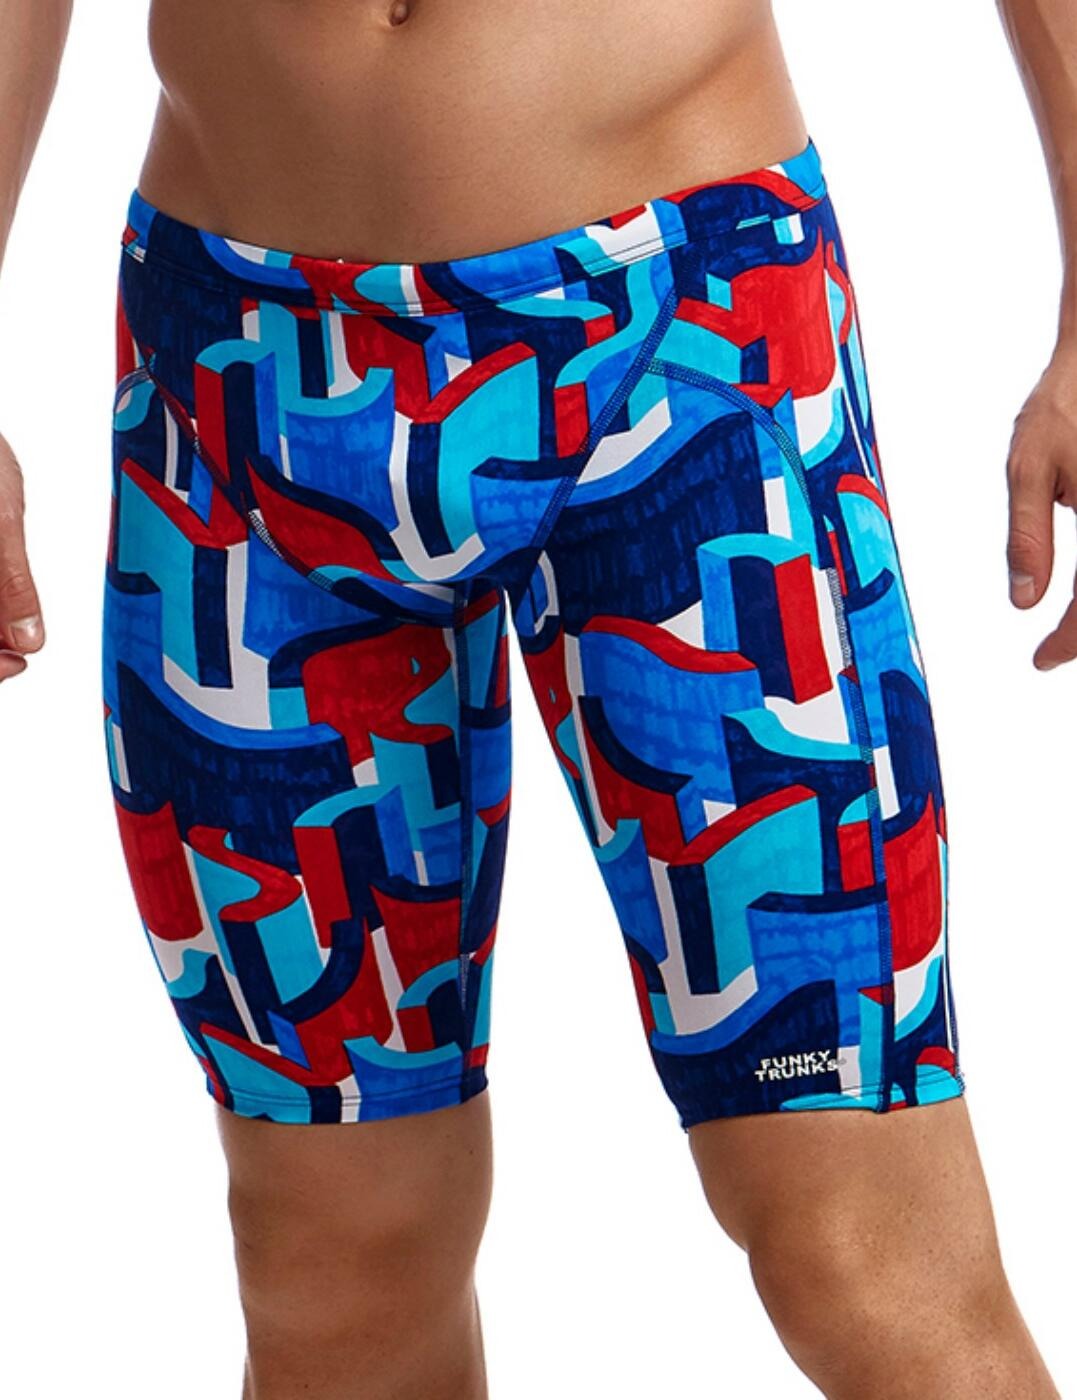 FT37M Funky Trunks Mens Training Jammers - FT37M02305 Block Rock